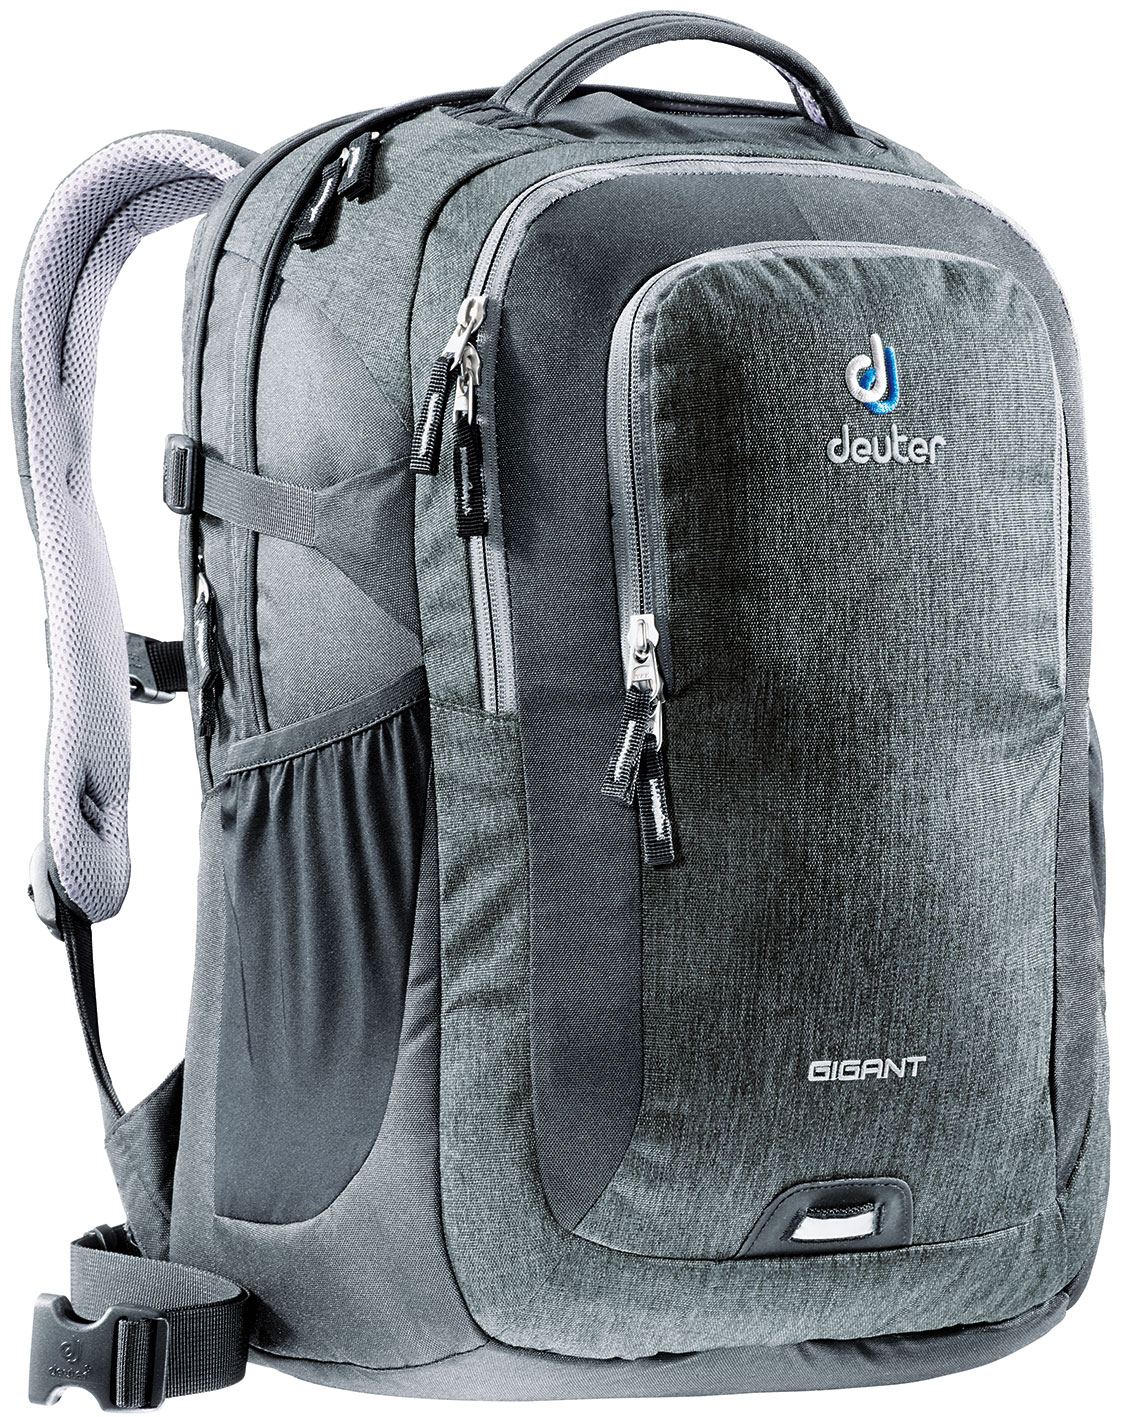 Deuter - Gigant dresscode-black - Daypacks -